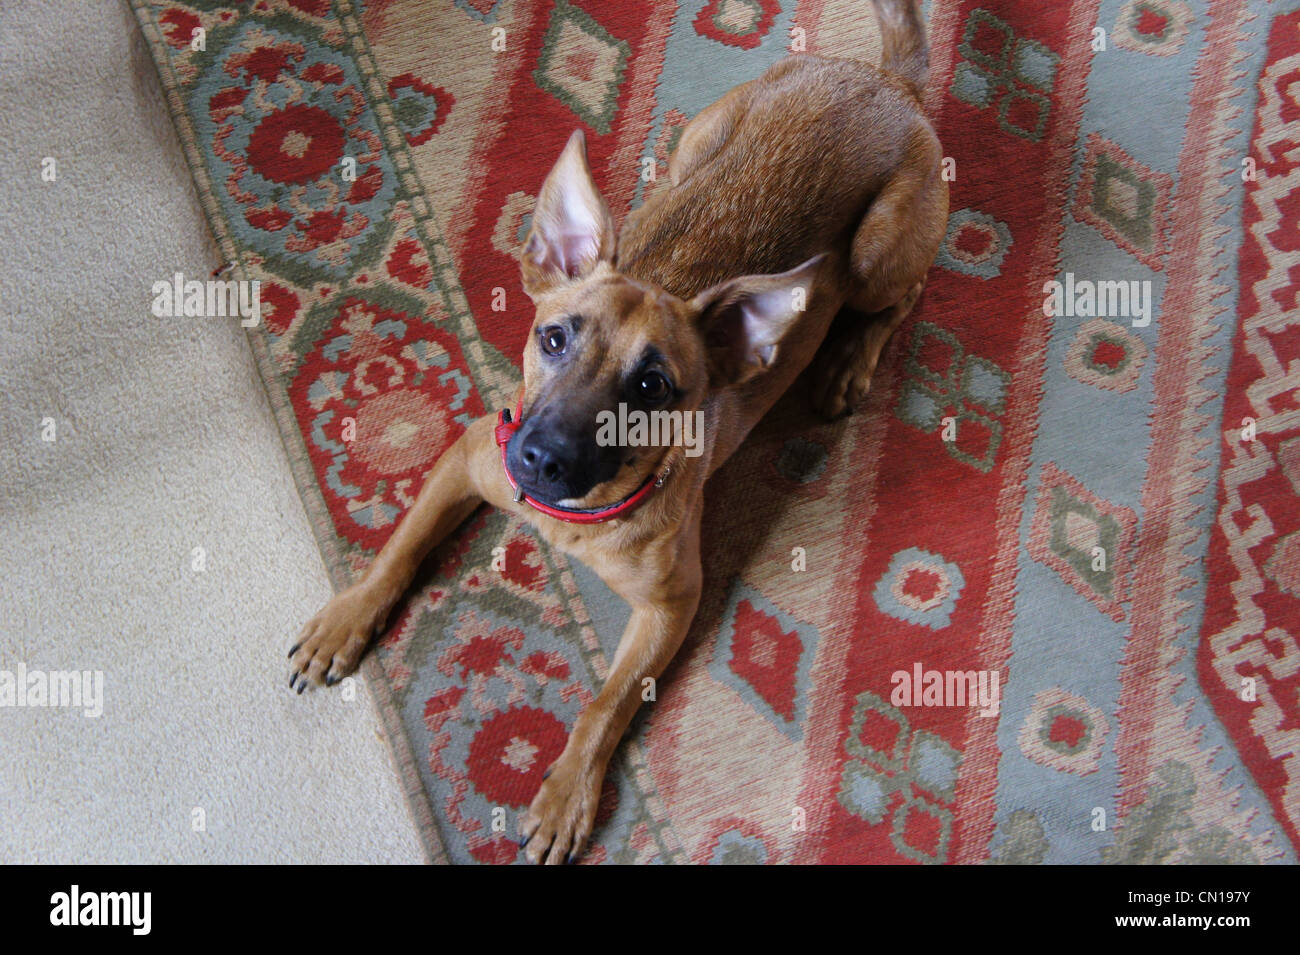 SONY DSC, chihuahua terrier mix dog lying down - Stock Image